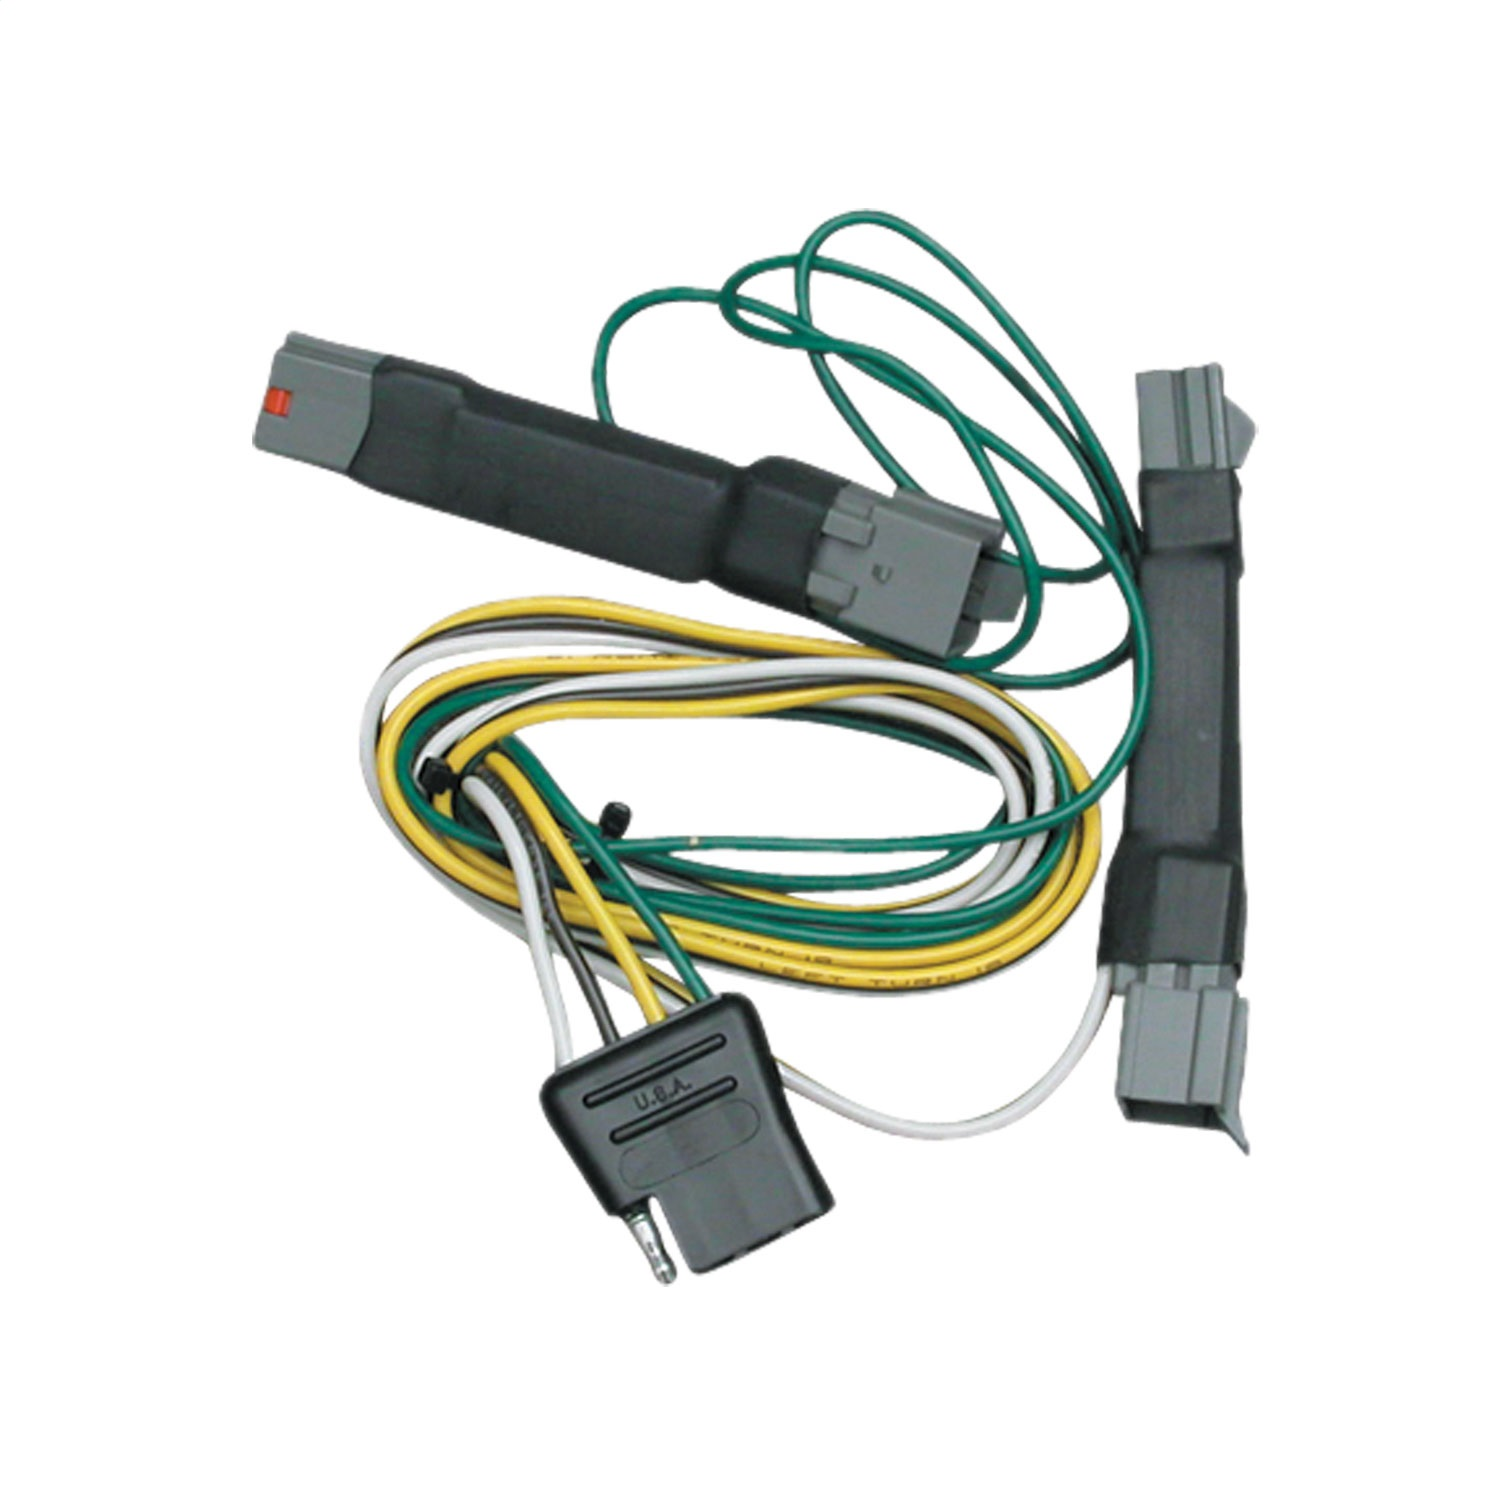 Tekonsha 118358 T-One Connector Assembly with Converter